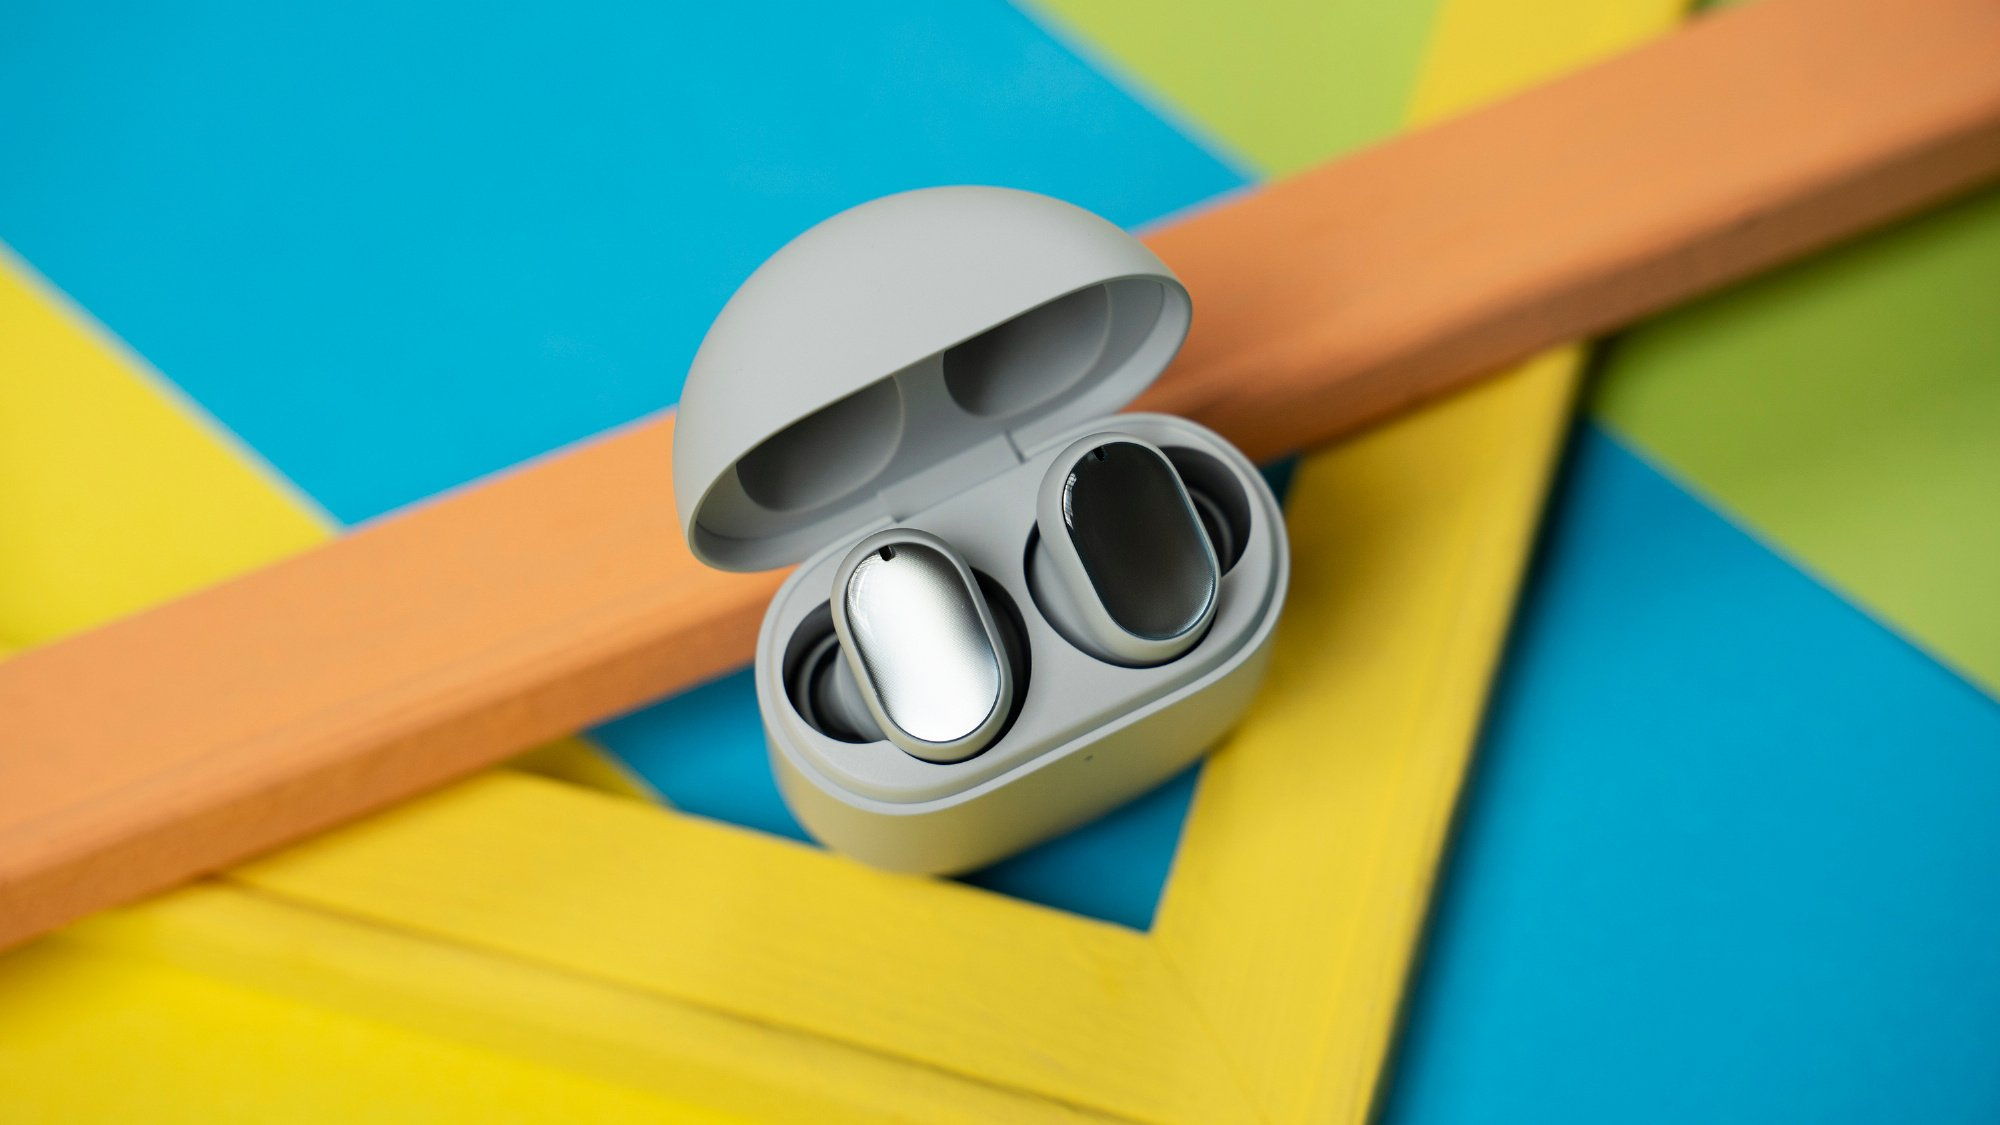 Specs and Features of the Poco Pop Buds (Expected)